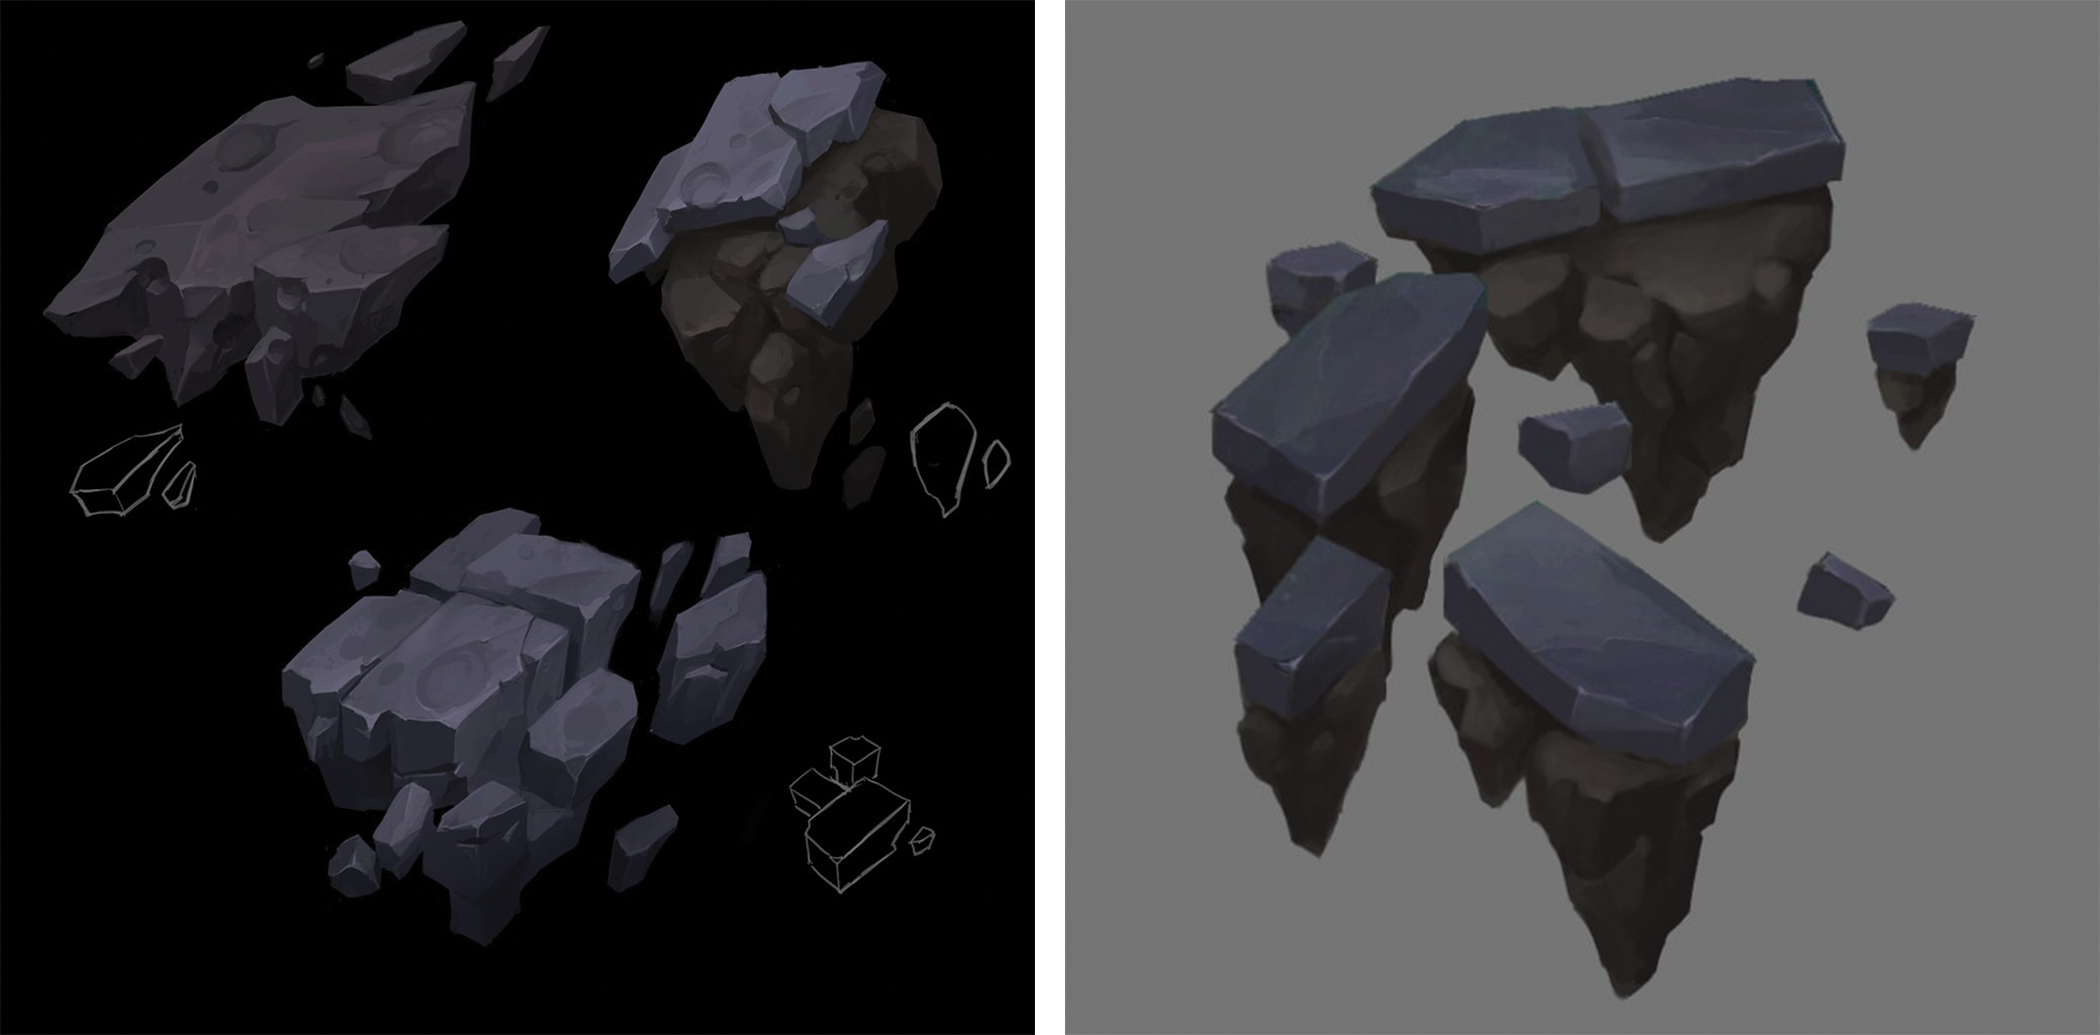 Exploring what rock and dirt might look like on torn away pieces of SR